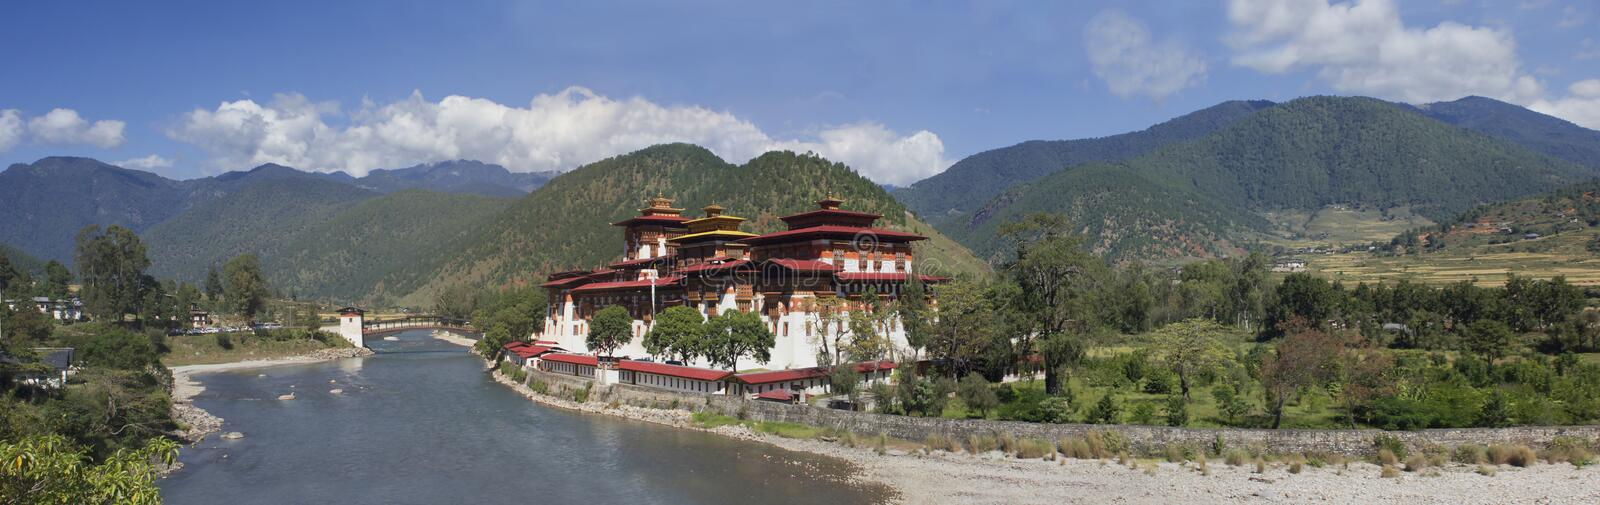 Punakhaklooster in Bhutan Azië stock afbeelding